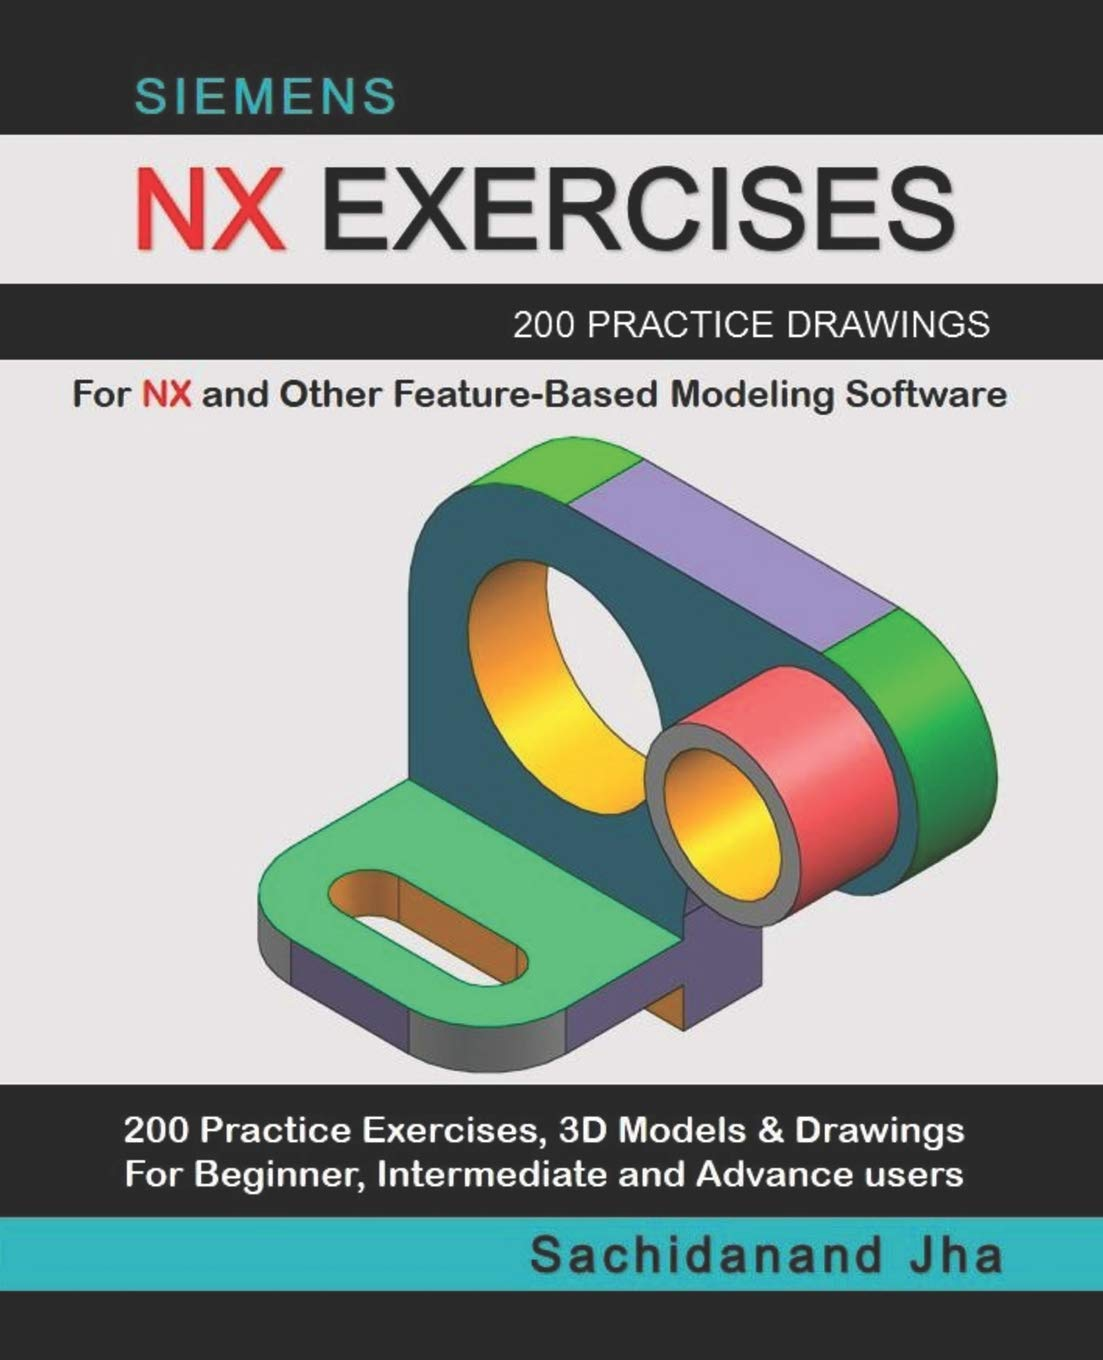 Buy Siemens Nx Exercises: 200 Practice Drawings For NX and